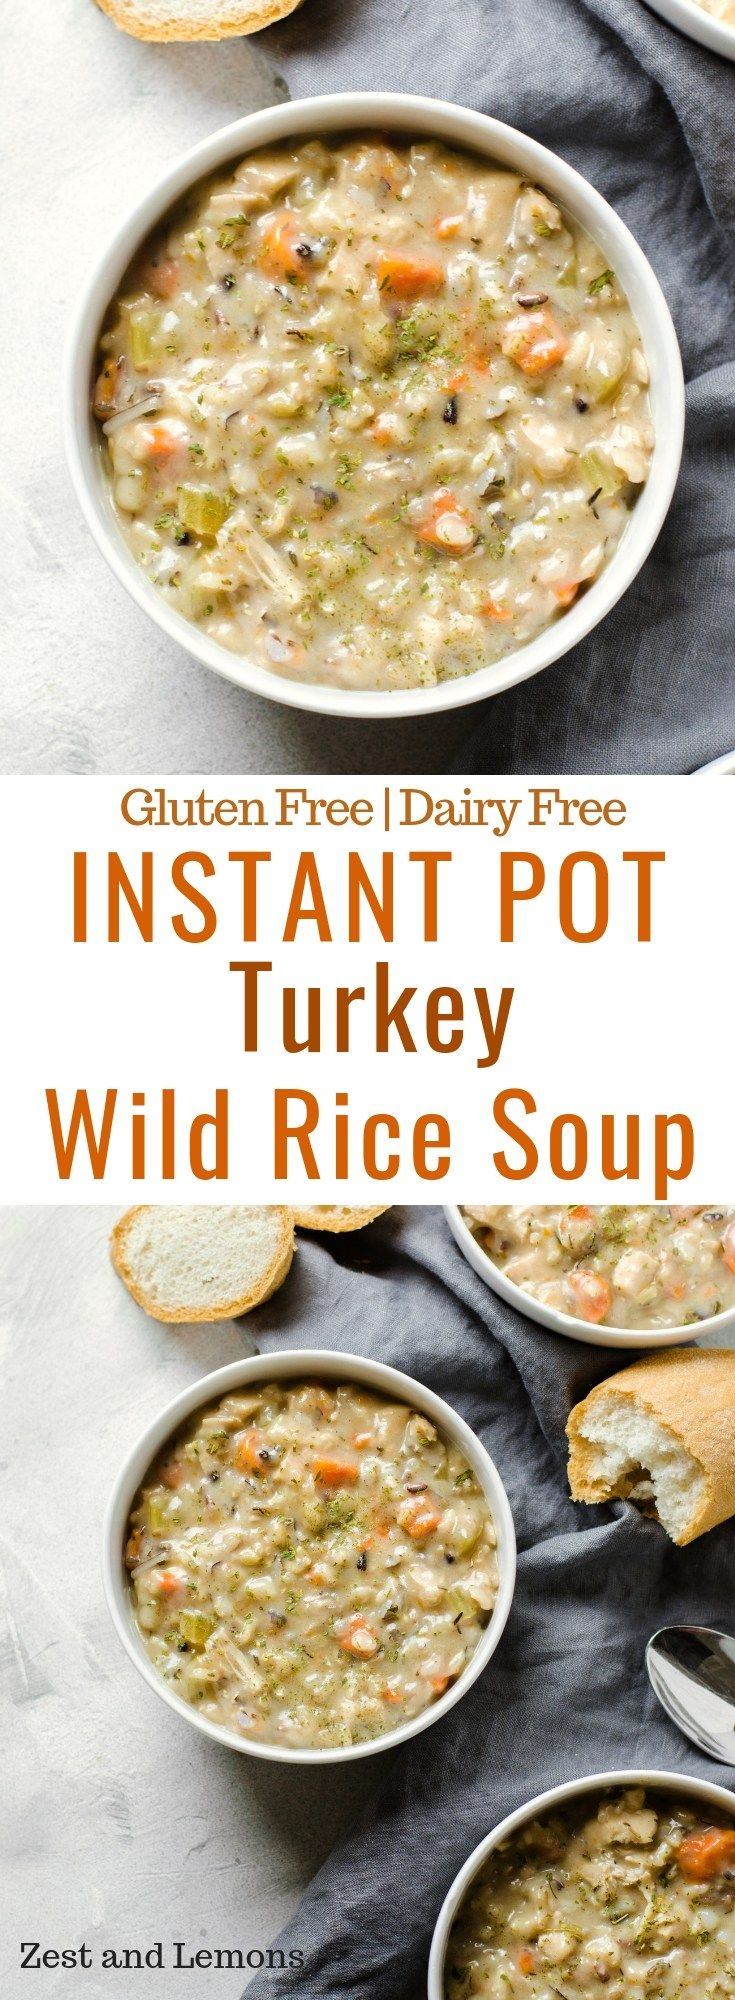 Instant Pot Turkey Wild Rice Soup. A thick and creamy soup for this winter seaso…